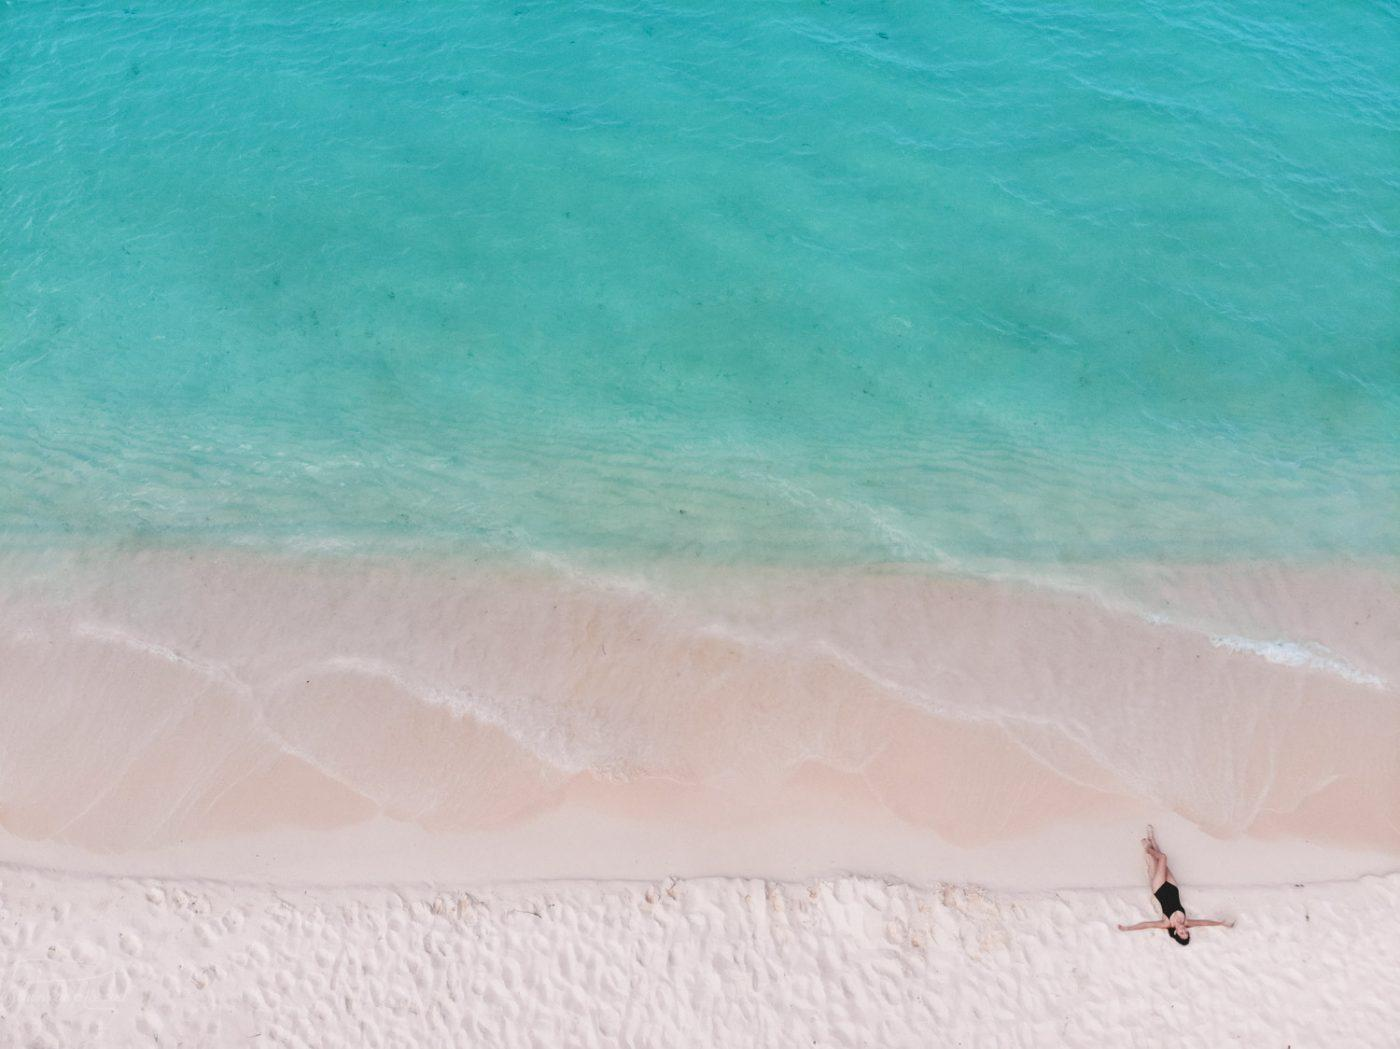 A person walking along the pristine sand and turquoise blue water of bahia de las aguilas, one of the best places to visit in the Dominican Republic.